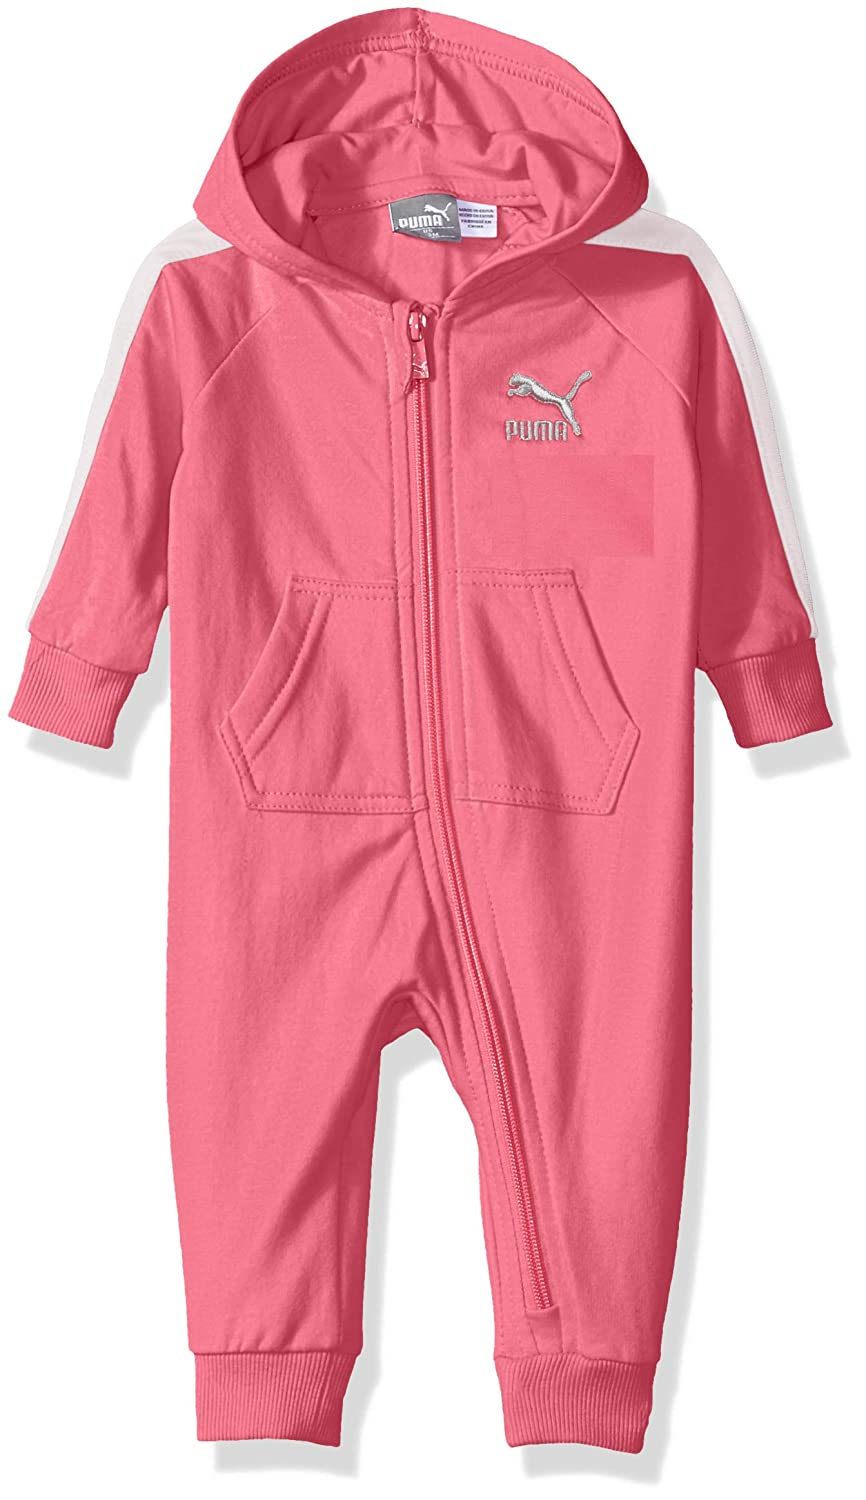 PUMA Baby Girls' Fleece Pram, Knock Out Pink, 3-6M